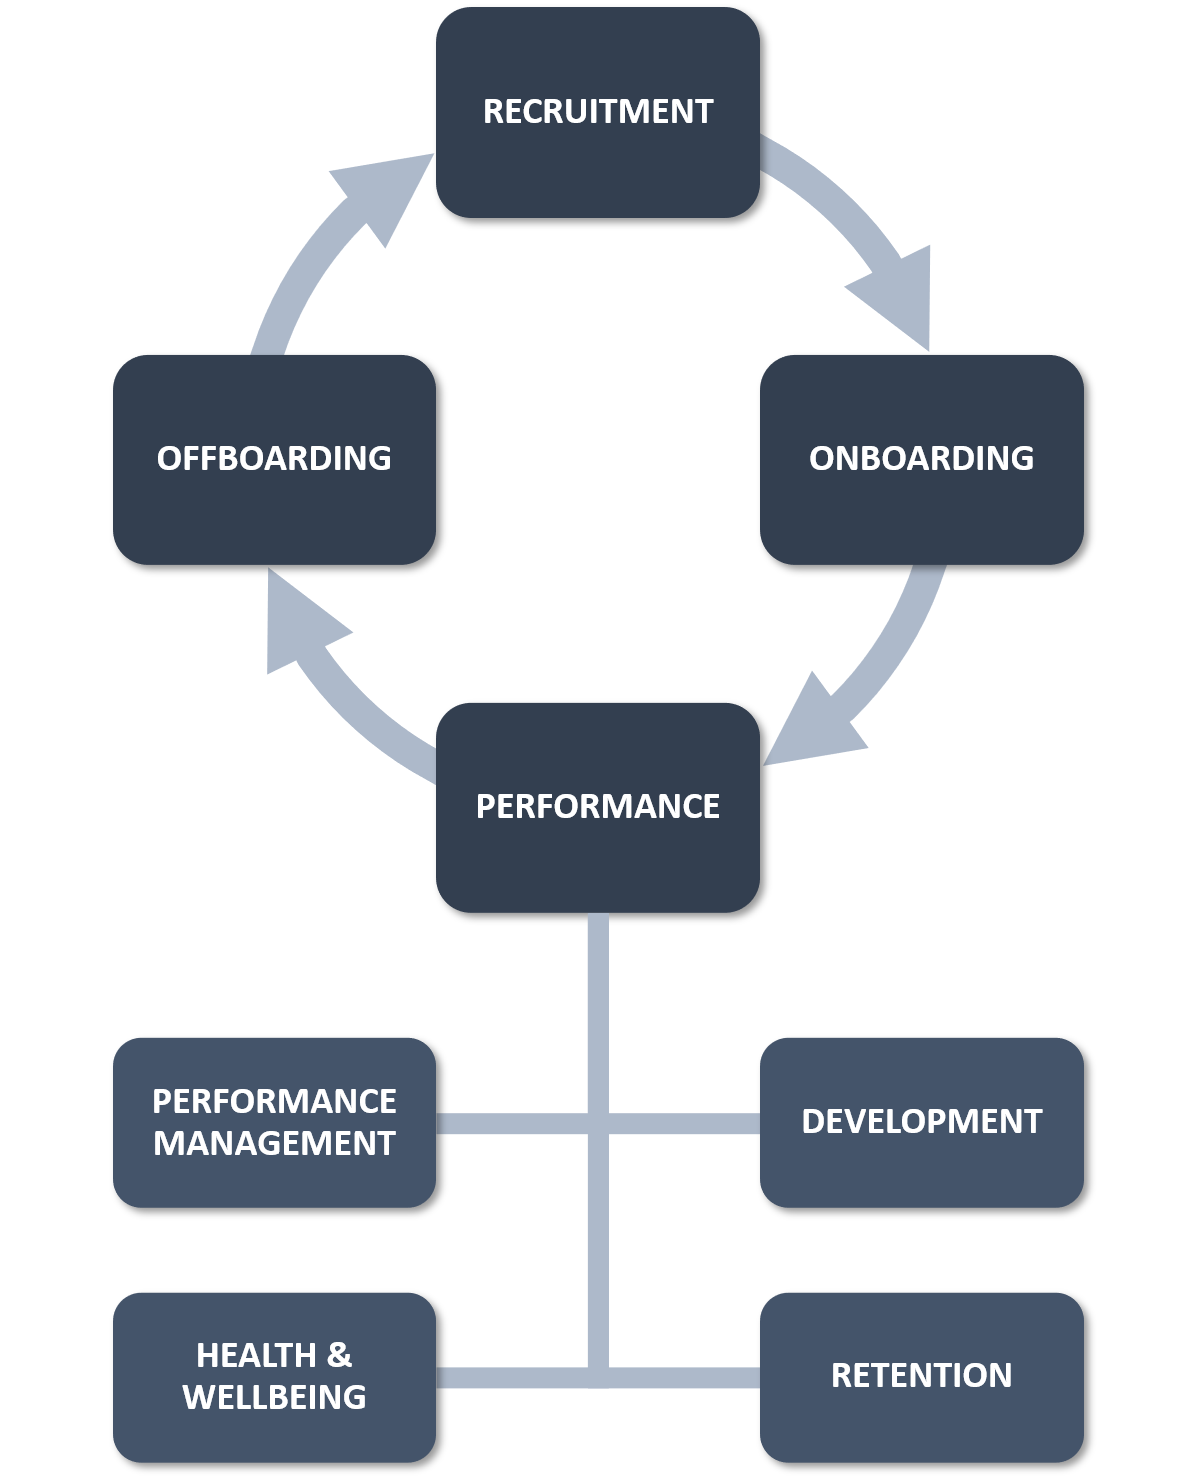 The 4+4 Part Employee Lifecycle: (1) Recruitment; (2) Onboarding; (3) Performance; and (4) Offboarding; plus (1) Performance Management; (2) Development; (3) Health & Wellbeing; and (4) Retention.